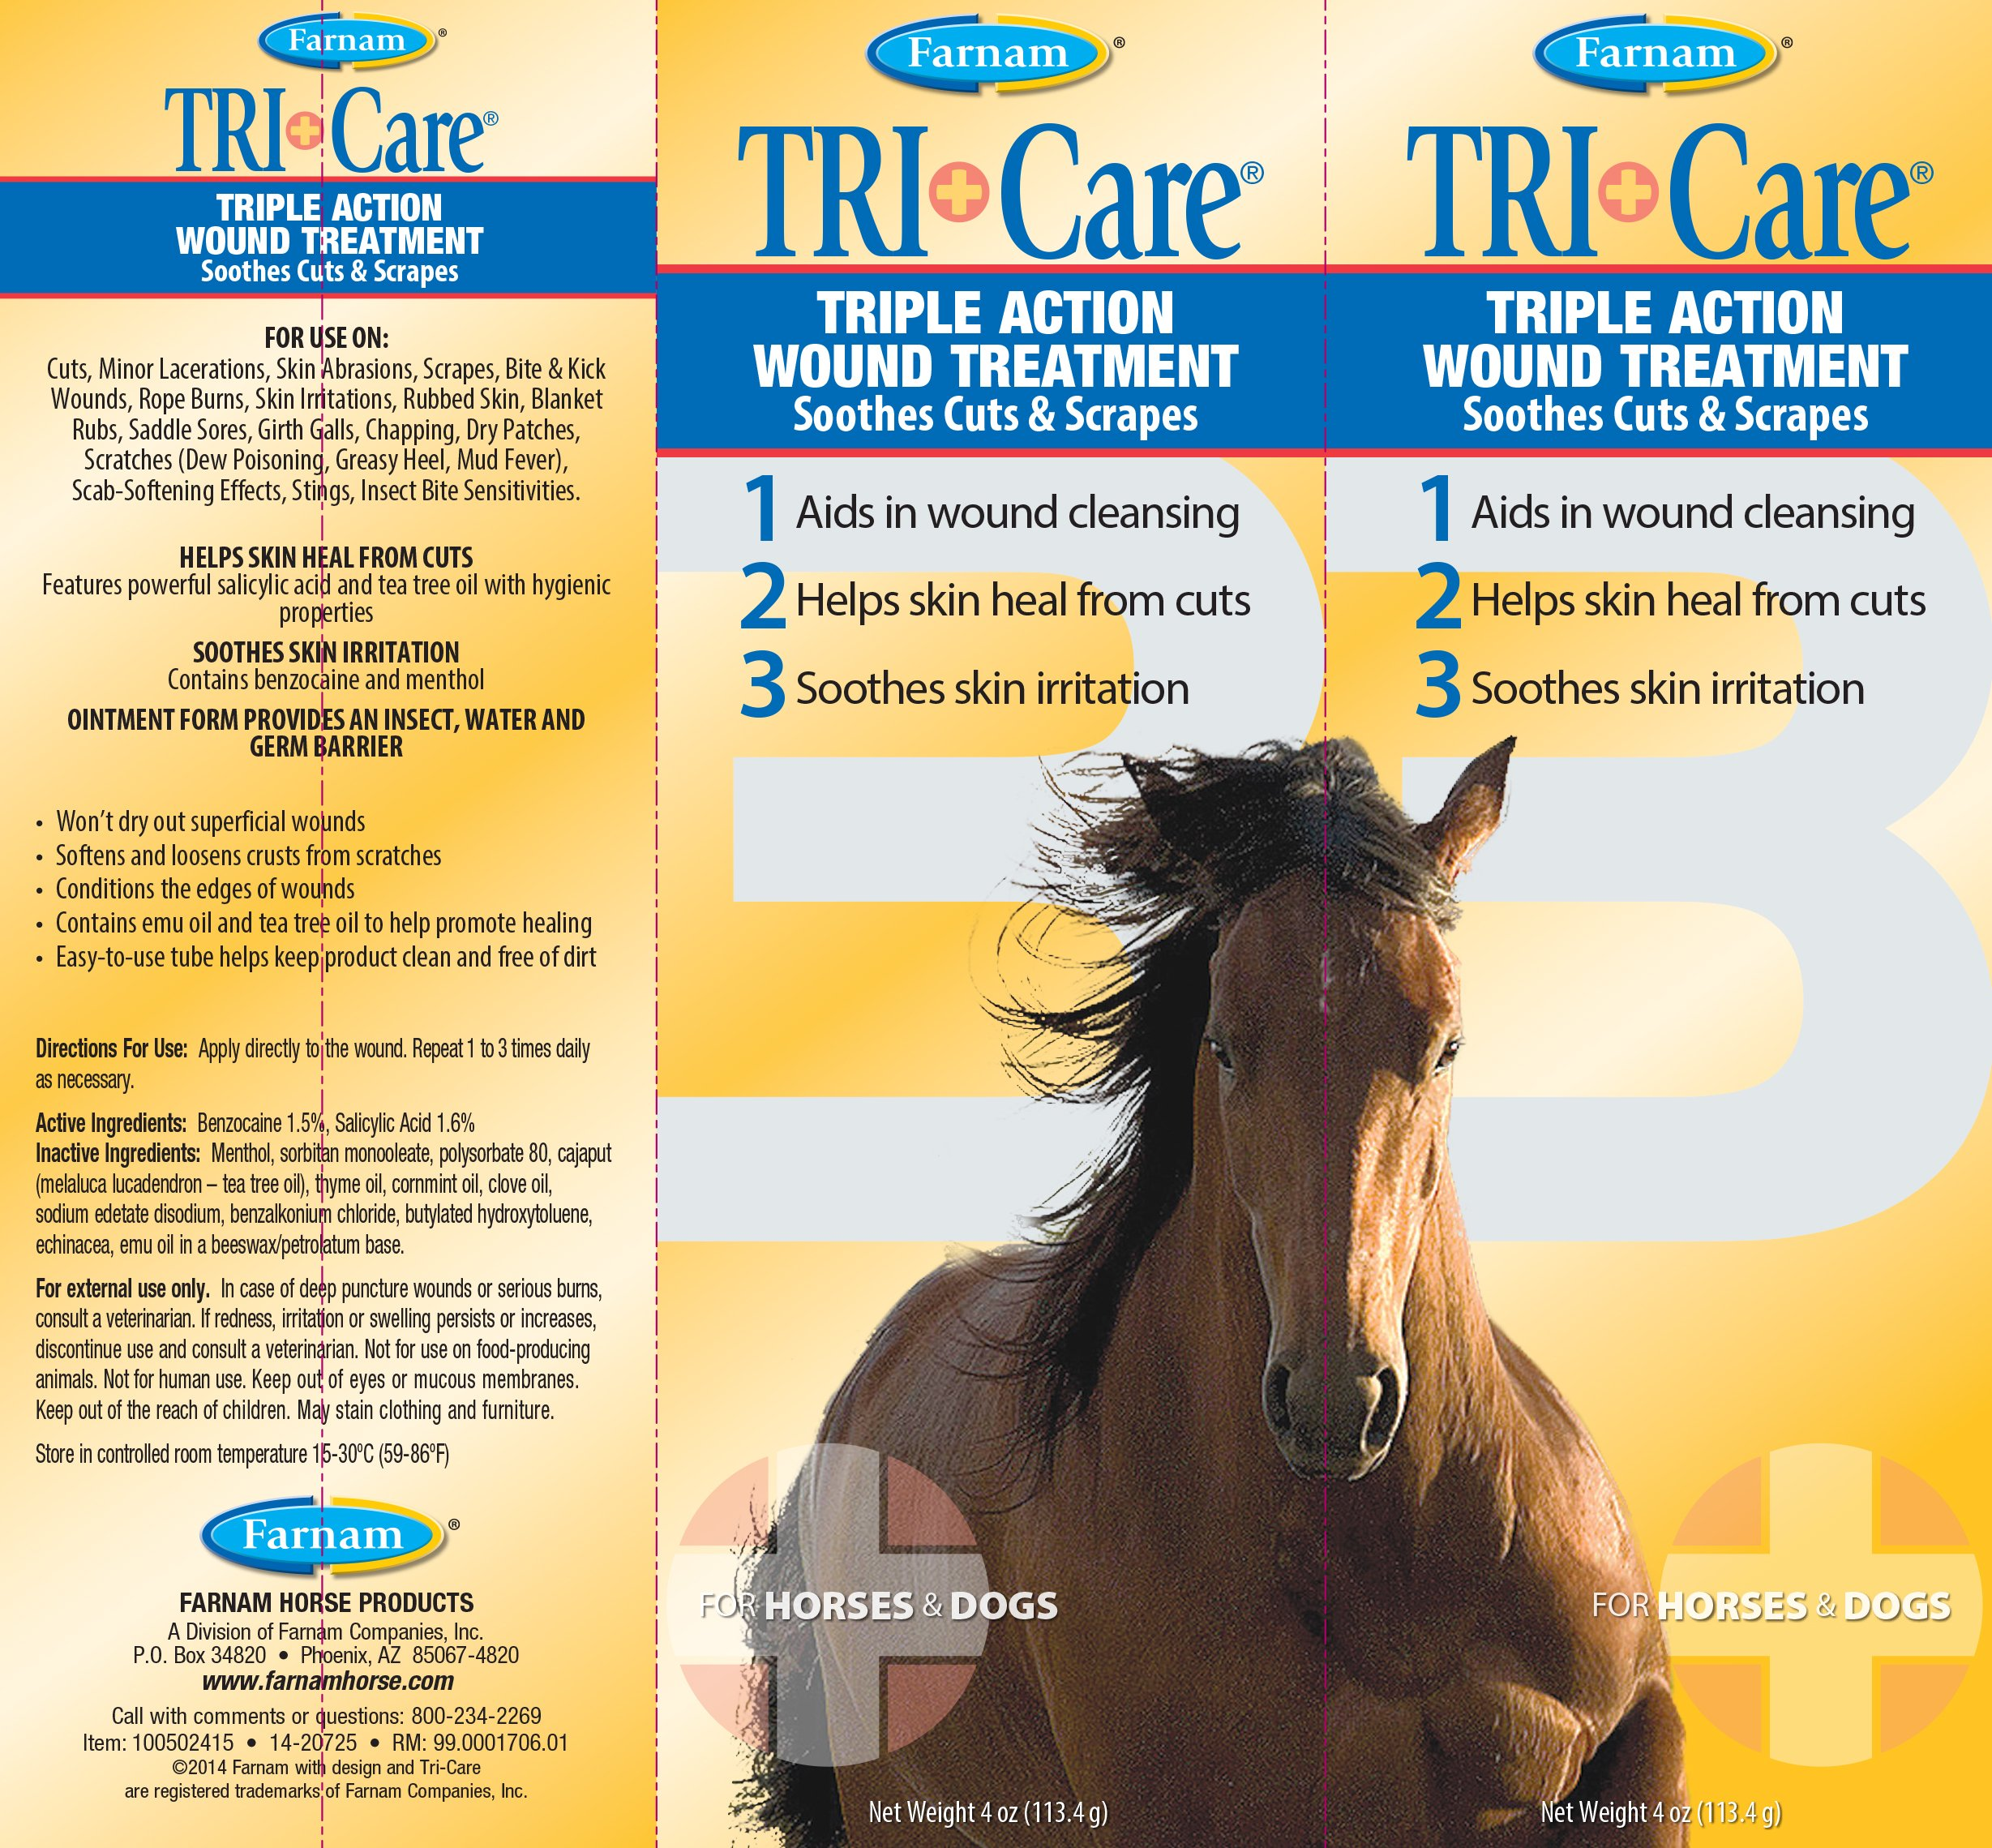 Farnam Tri-Care Triple Action Wound Treatment, 4 oz. by Farnam (Image #2)